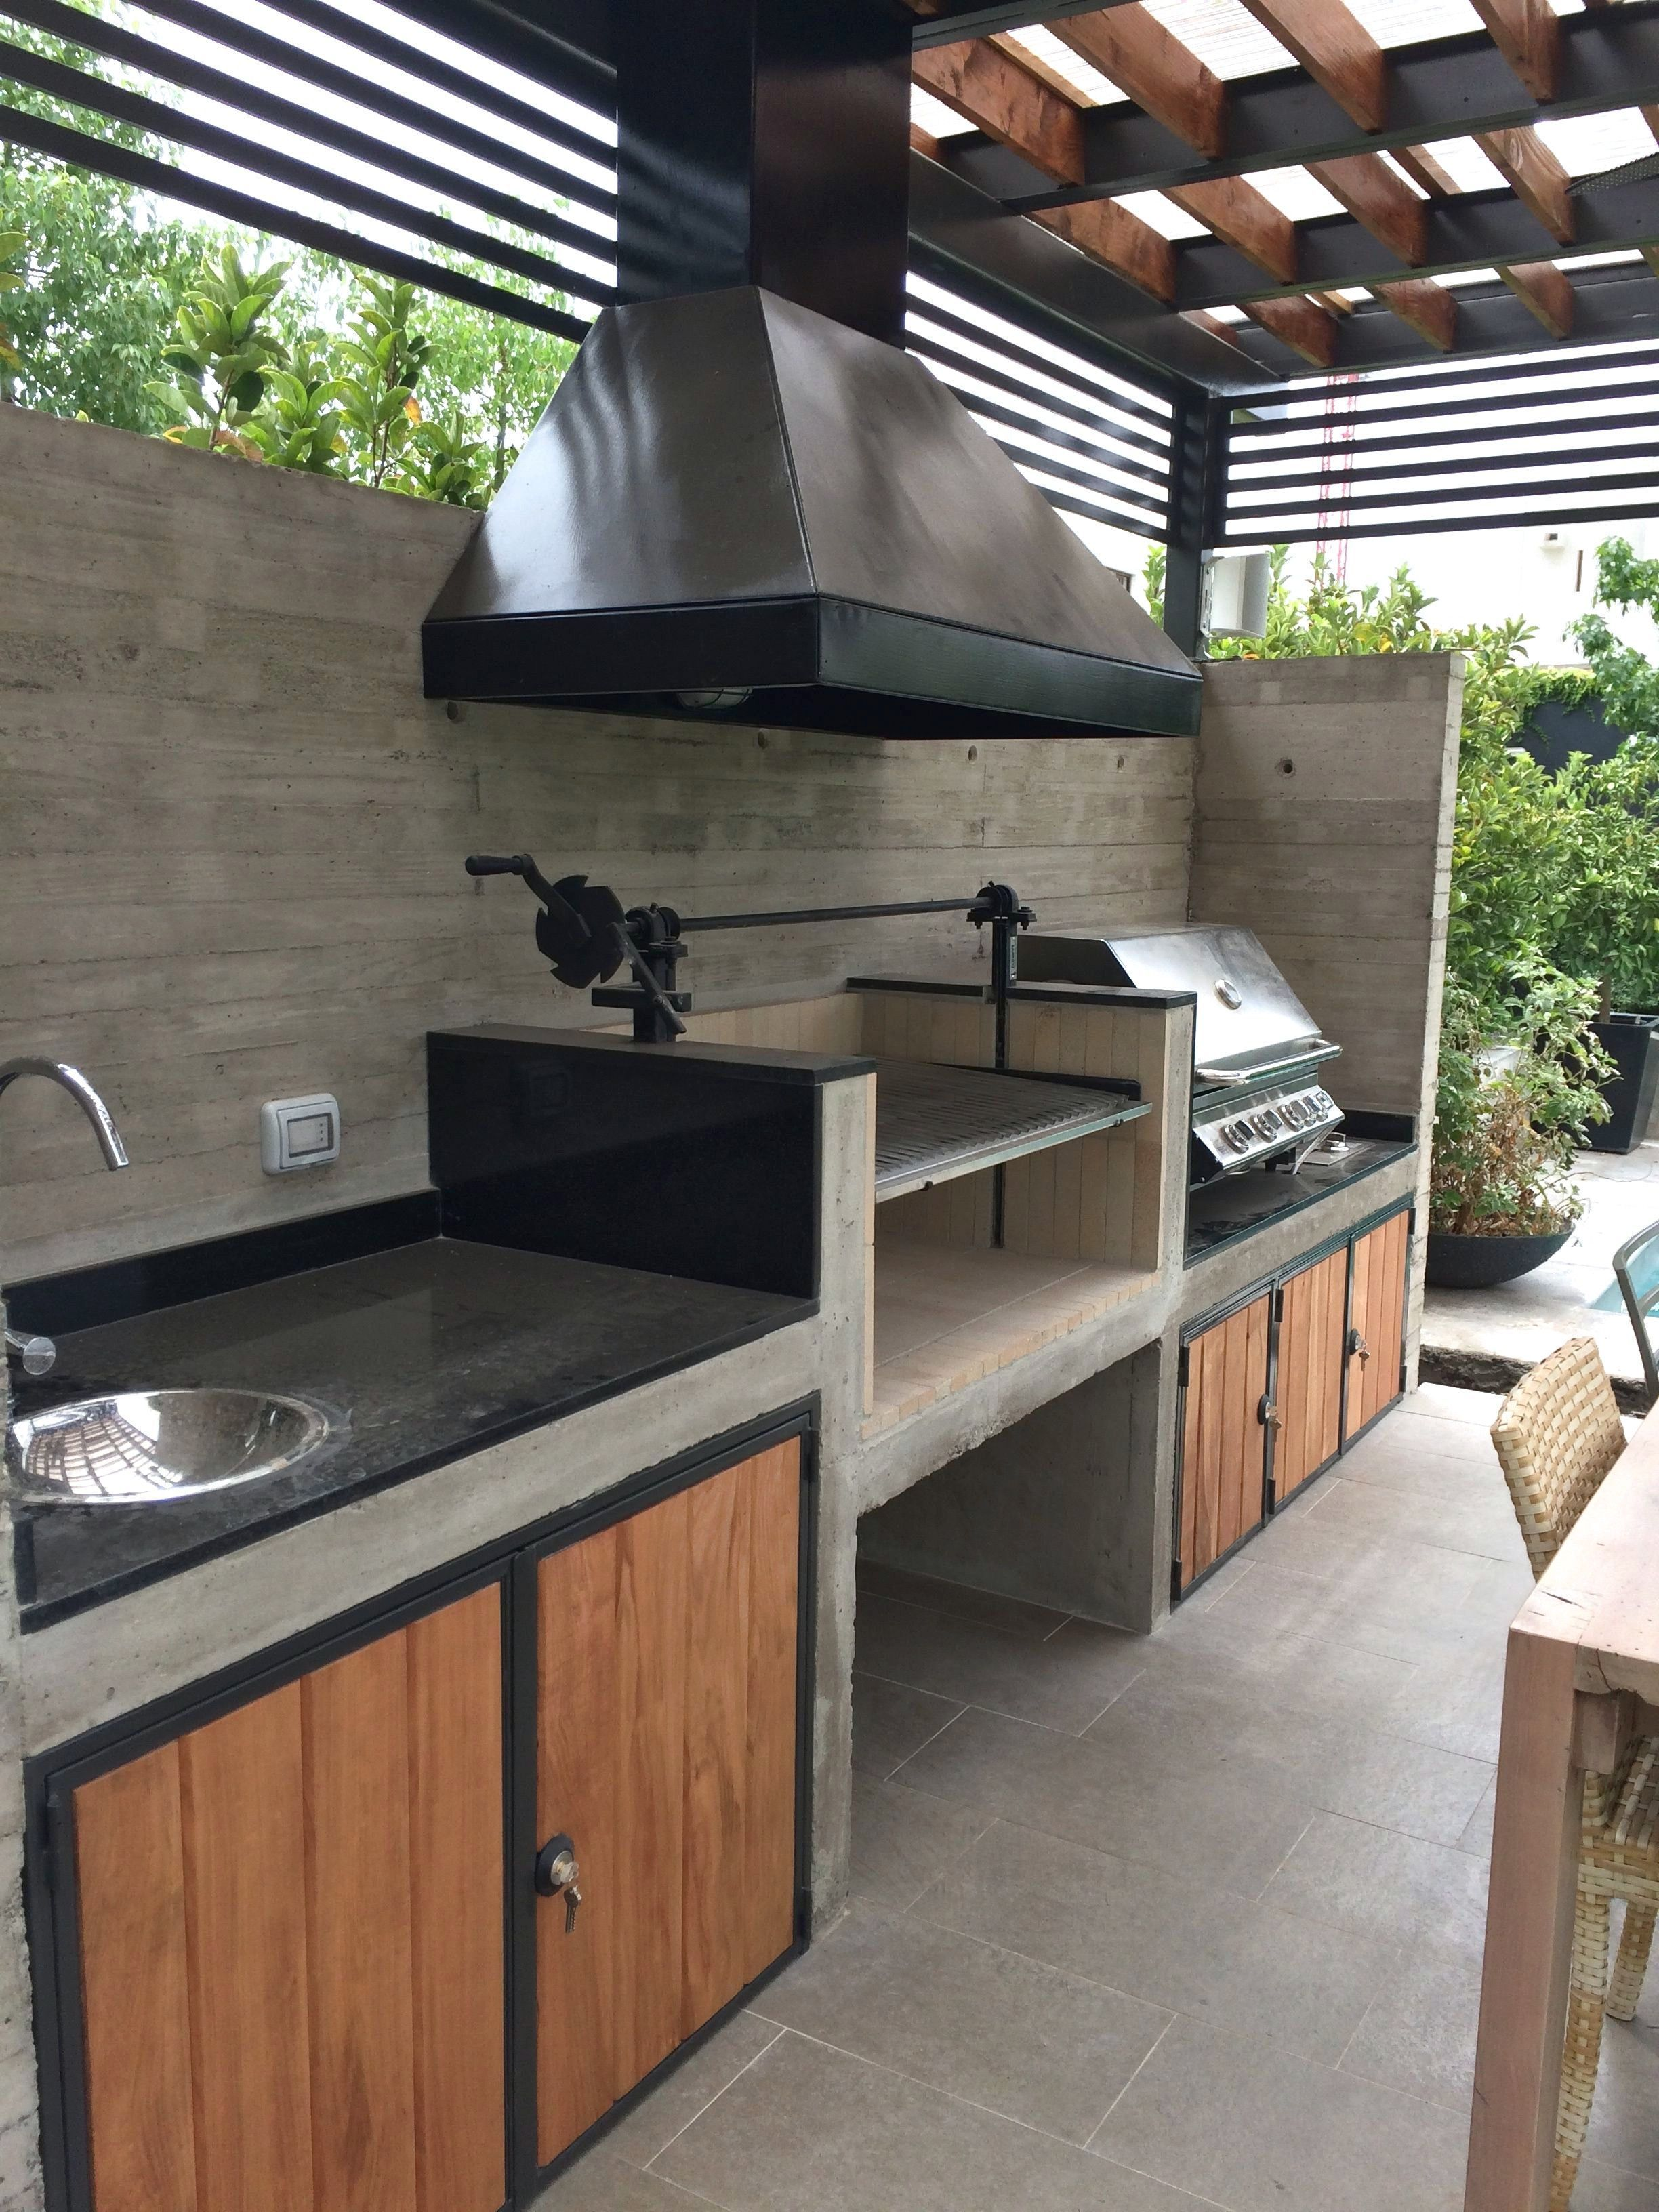 As Soon As These Outdoor Kitchen Ideas You Can Both Prepare And Enjoy Your Food Under The W Outdoor Kitchen Design Outdoor Kitchen Outdoor Kitchen Countertops